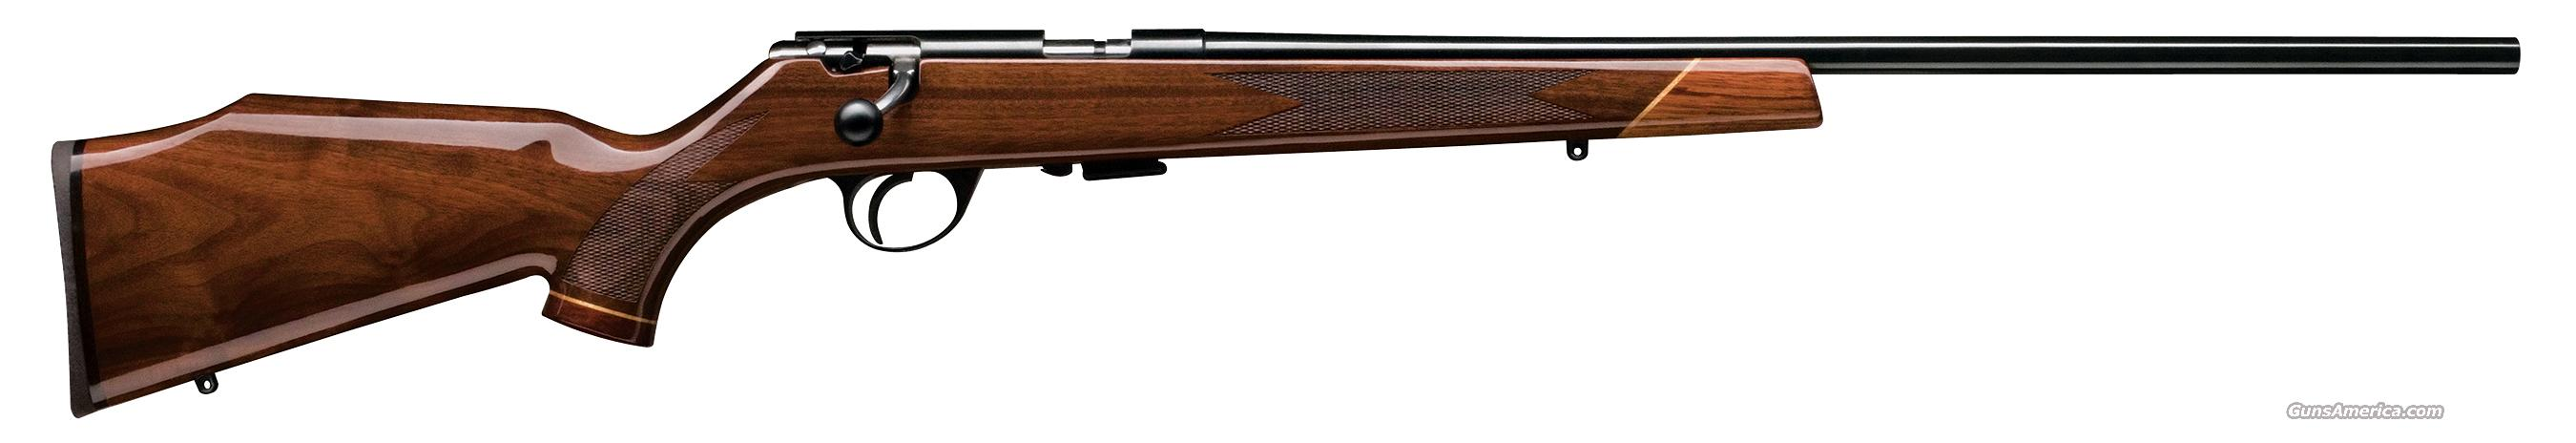 Weatherby Mark XXII German 17 HMR     New!  Guns > Rifles > Weatherby Rifles > Sporting